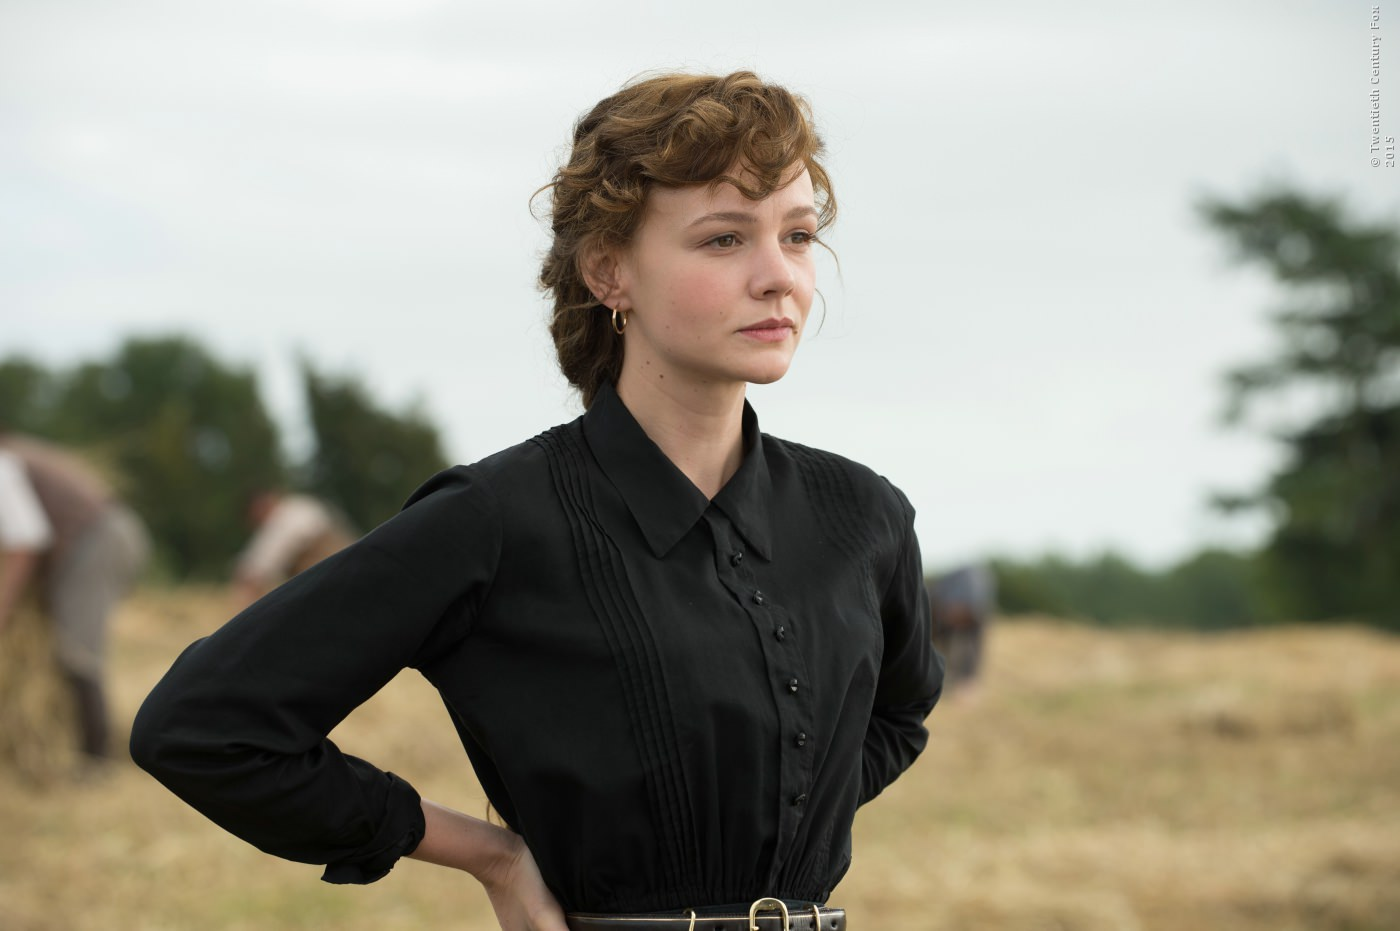 Bathsheba Everdene (Carey Mulligan)